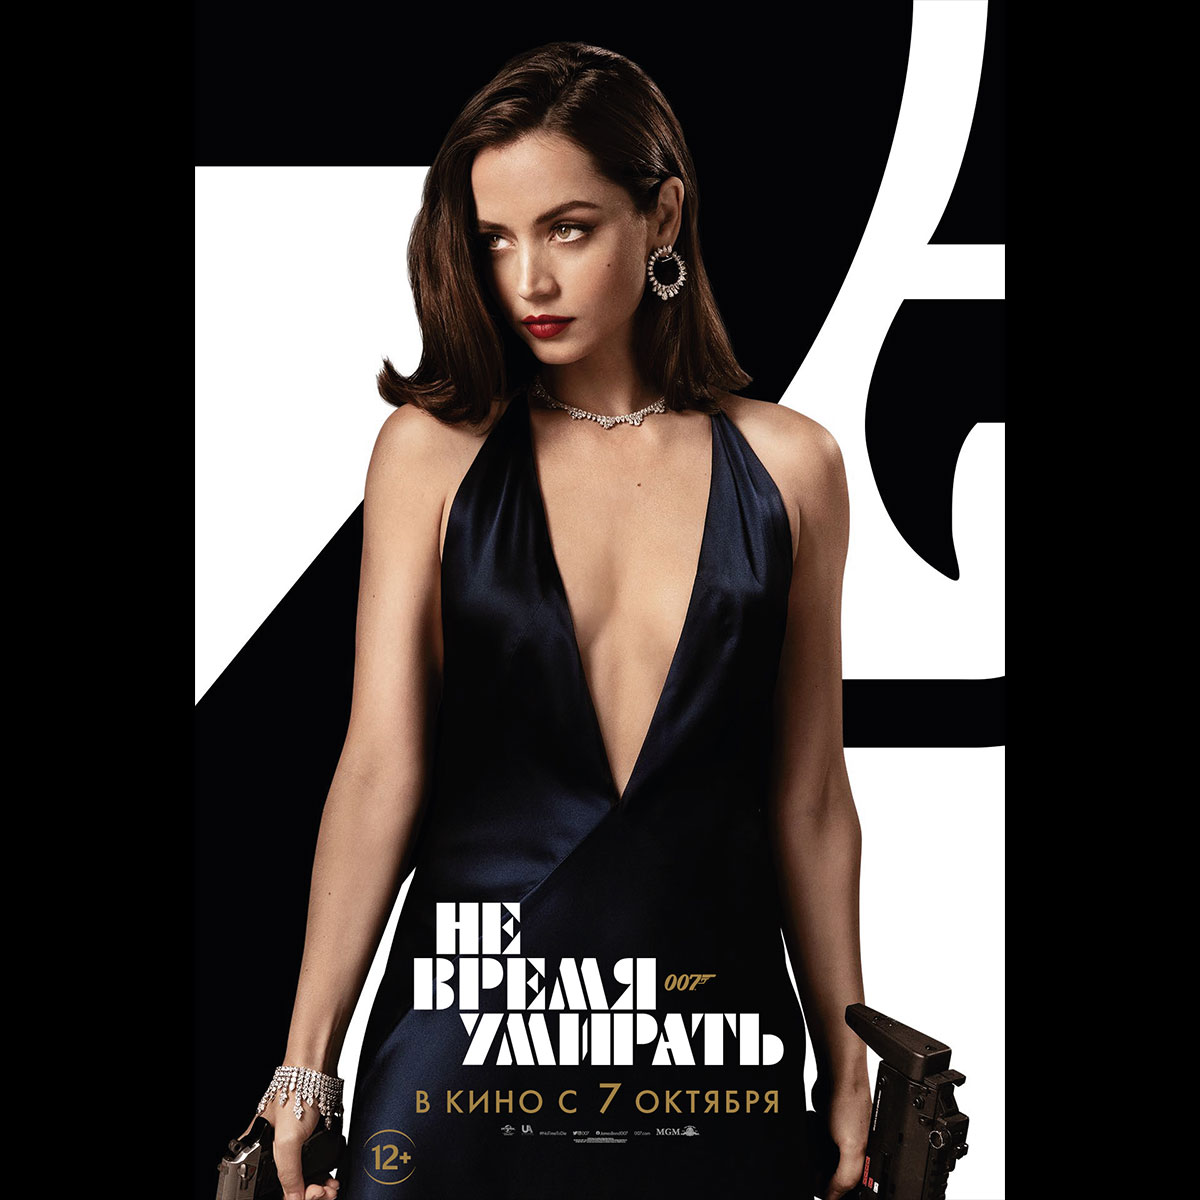 Poster movie with Ana de Armas wearind a black dress